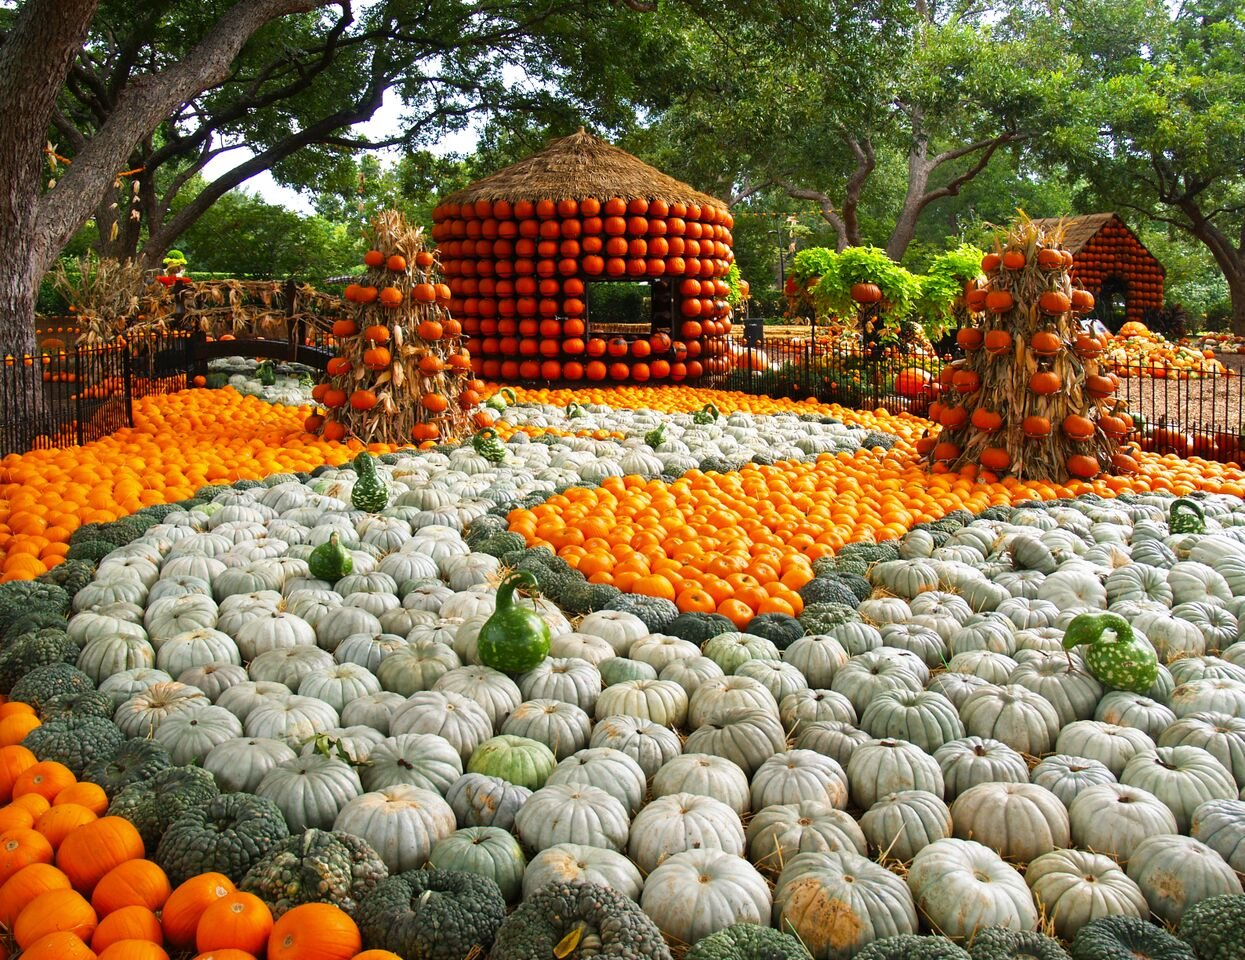 Things To Do And To View At The Autumn At The Arboretum